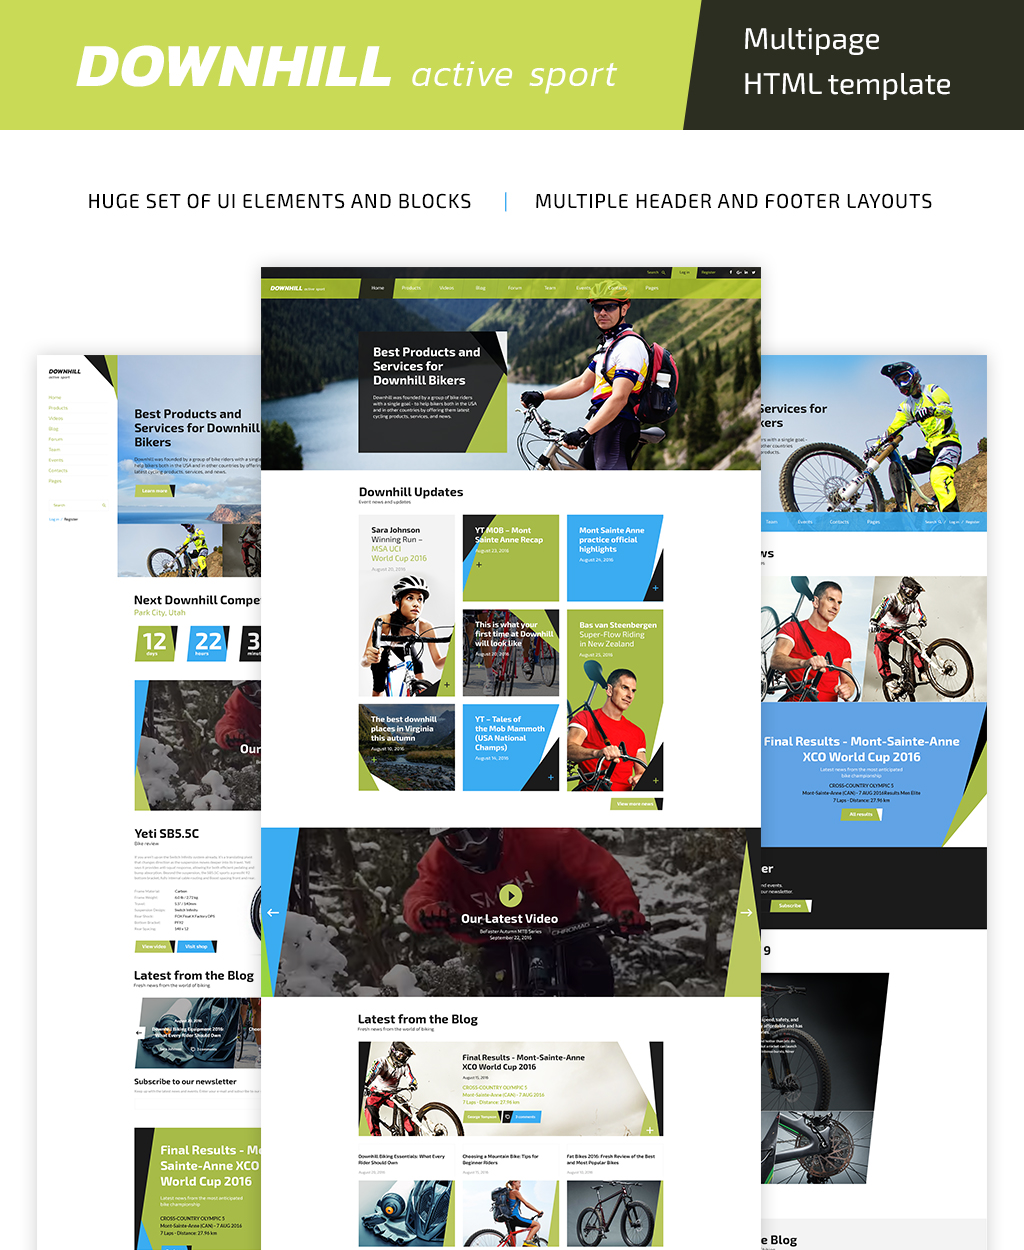 DownHill - Active Sport Multipage HTML5 Website Template